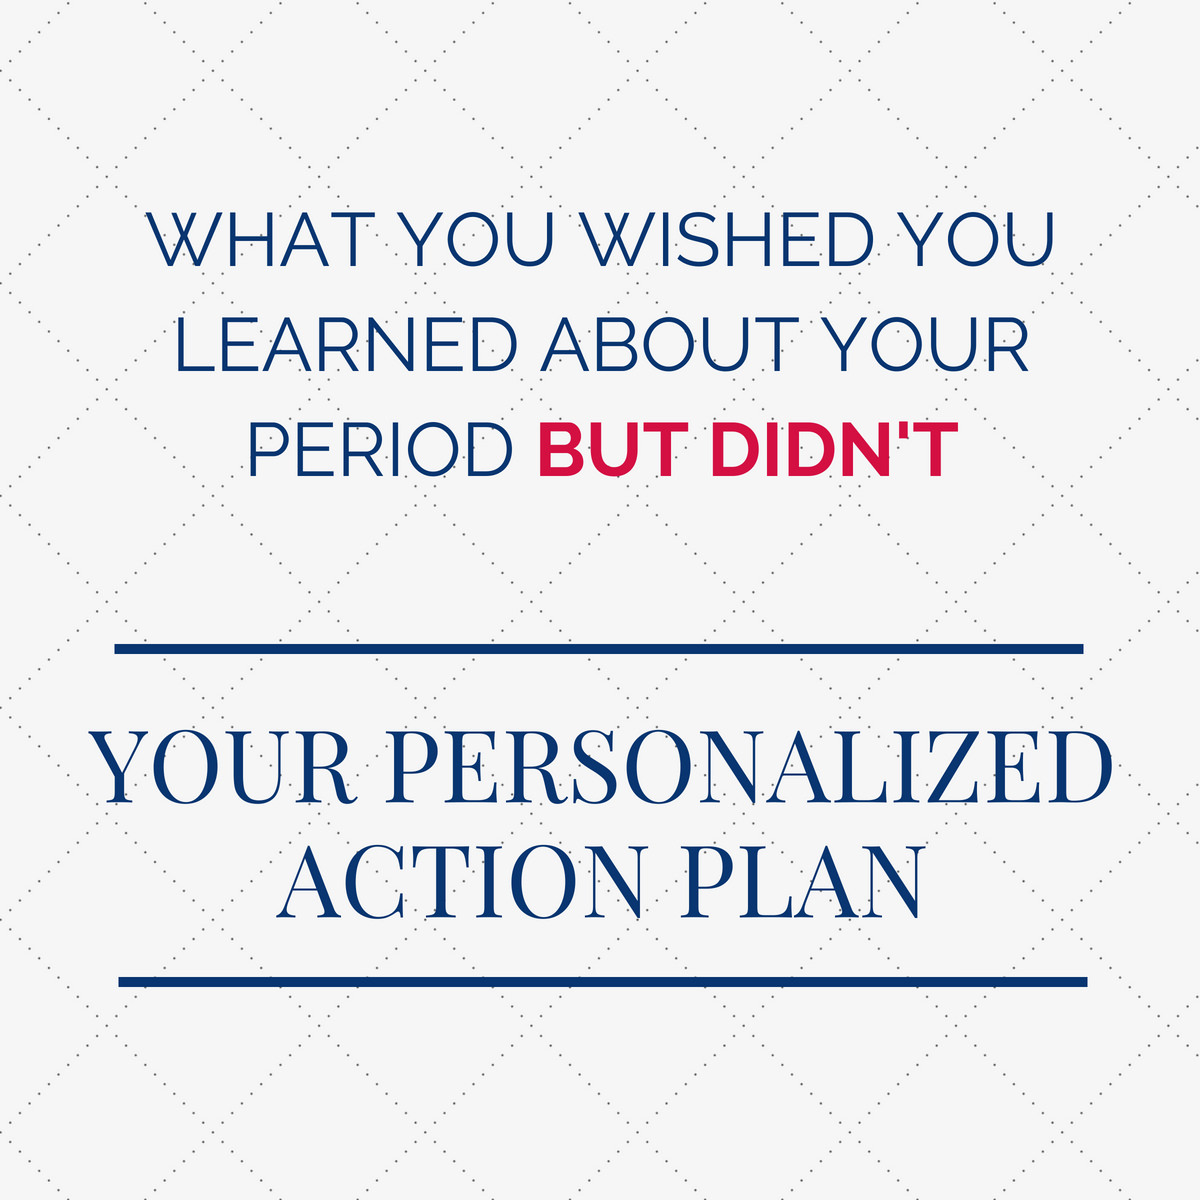 Personalized Action Plan.jpg